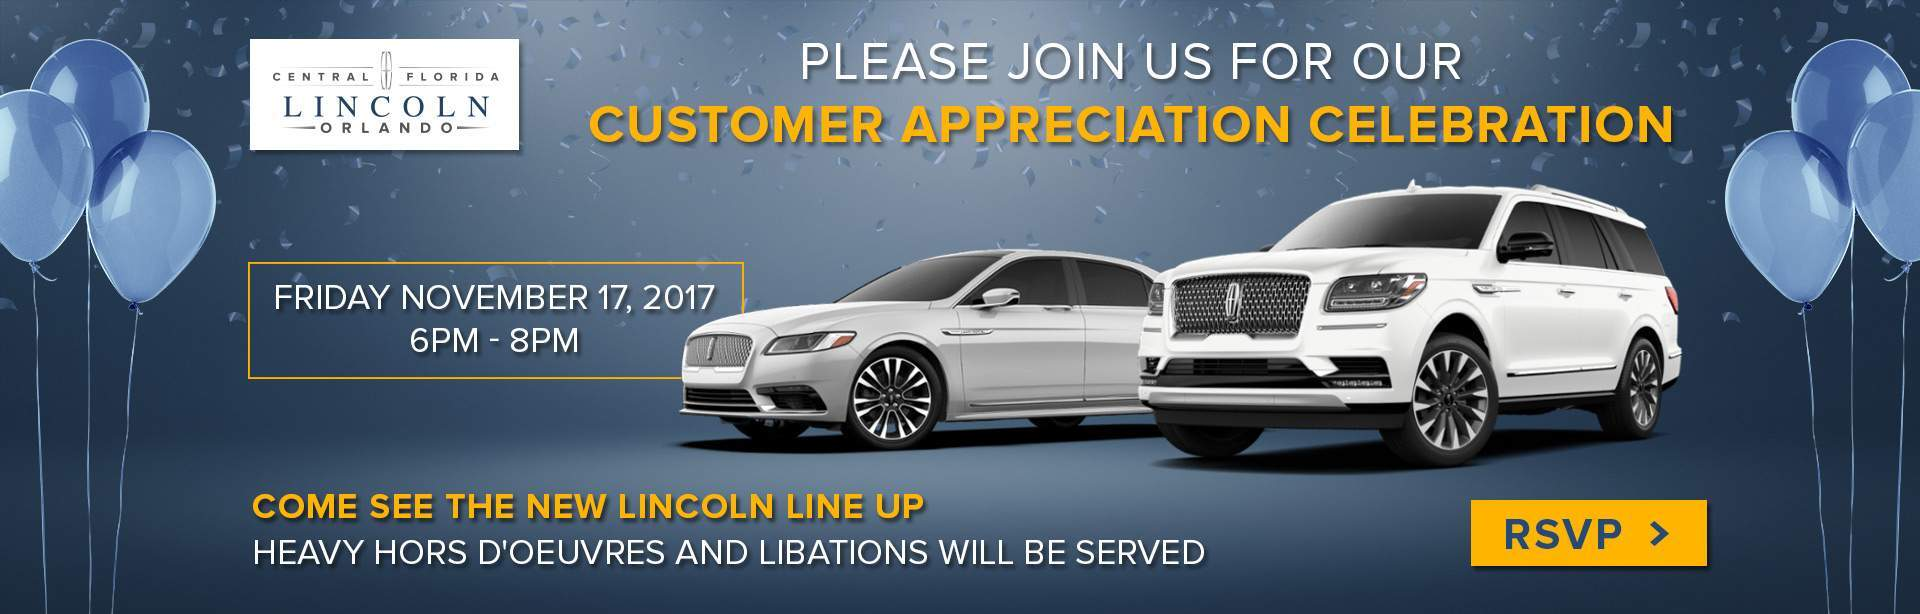 lincoln dealer orlando fl central florida lincoln